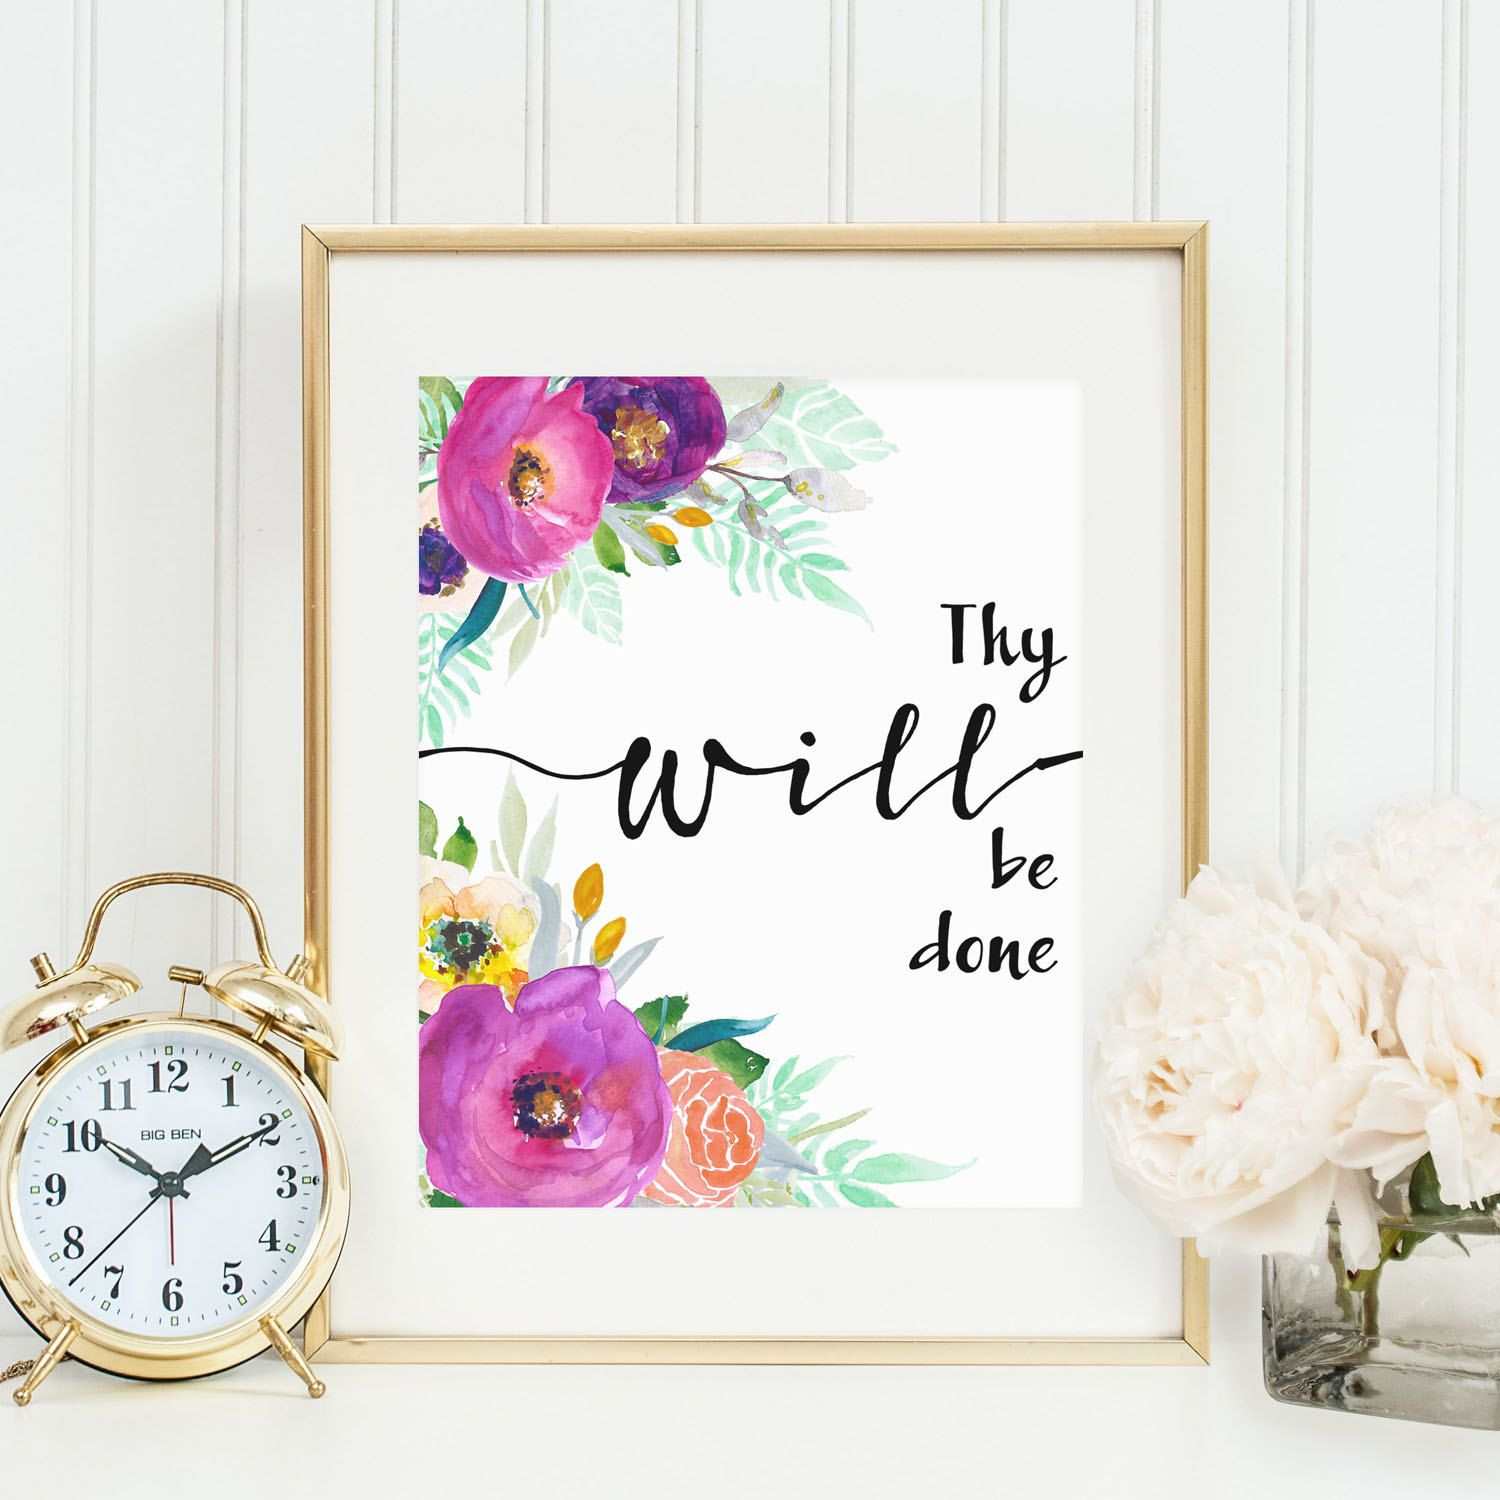 thy will be done quotes bible journaling - Google Search